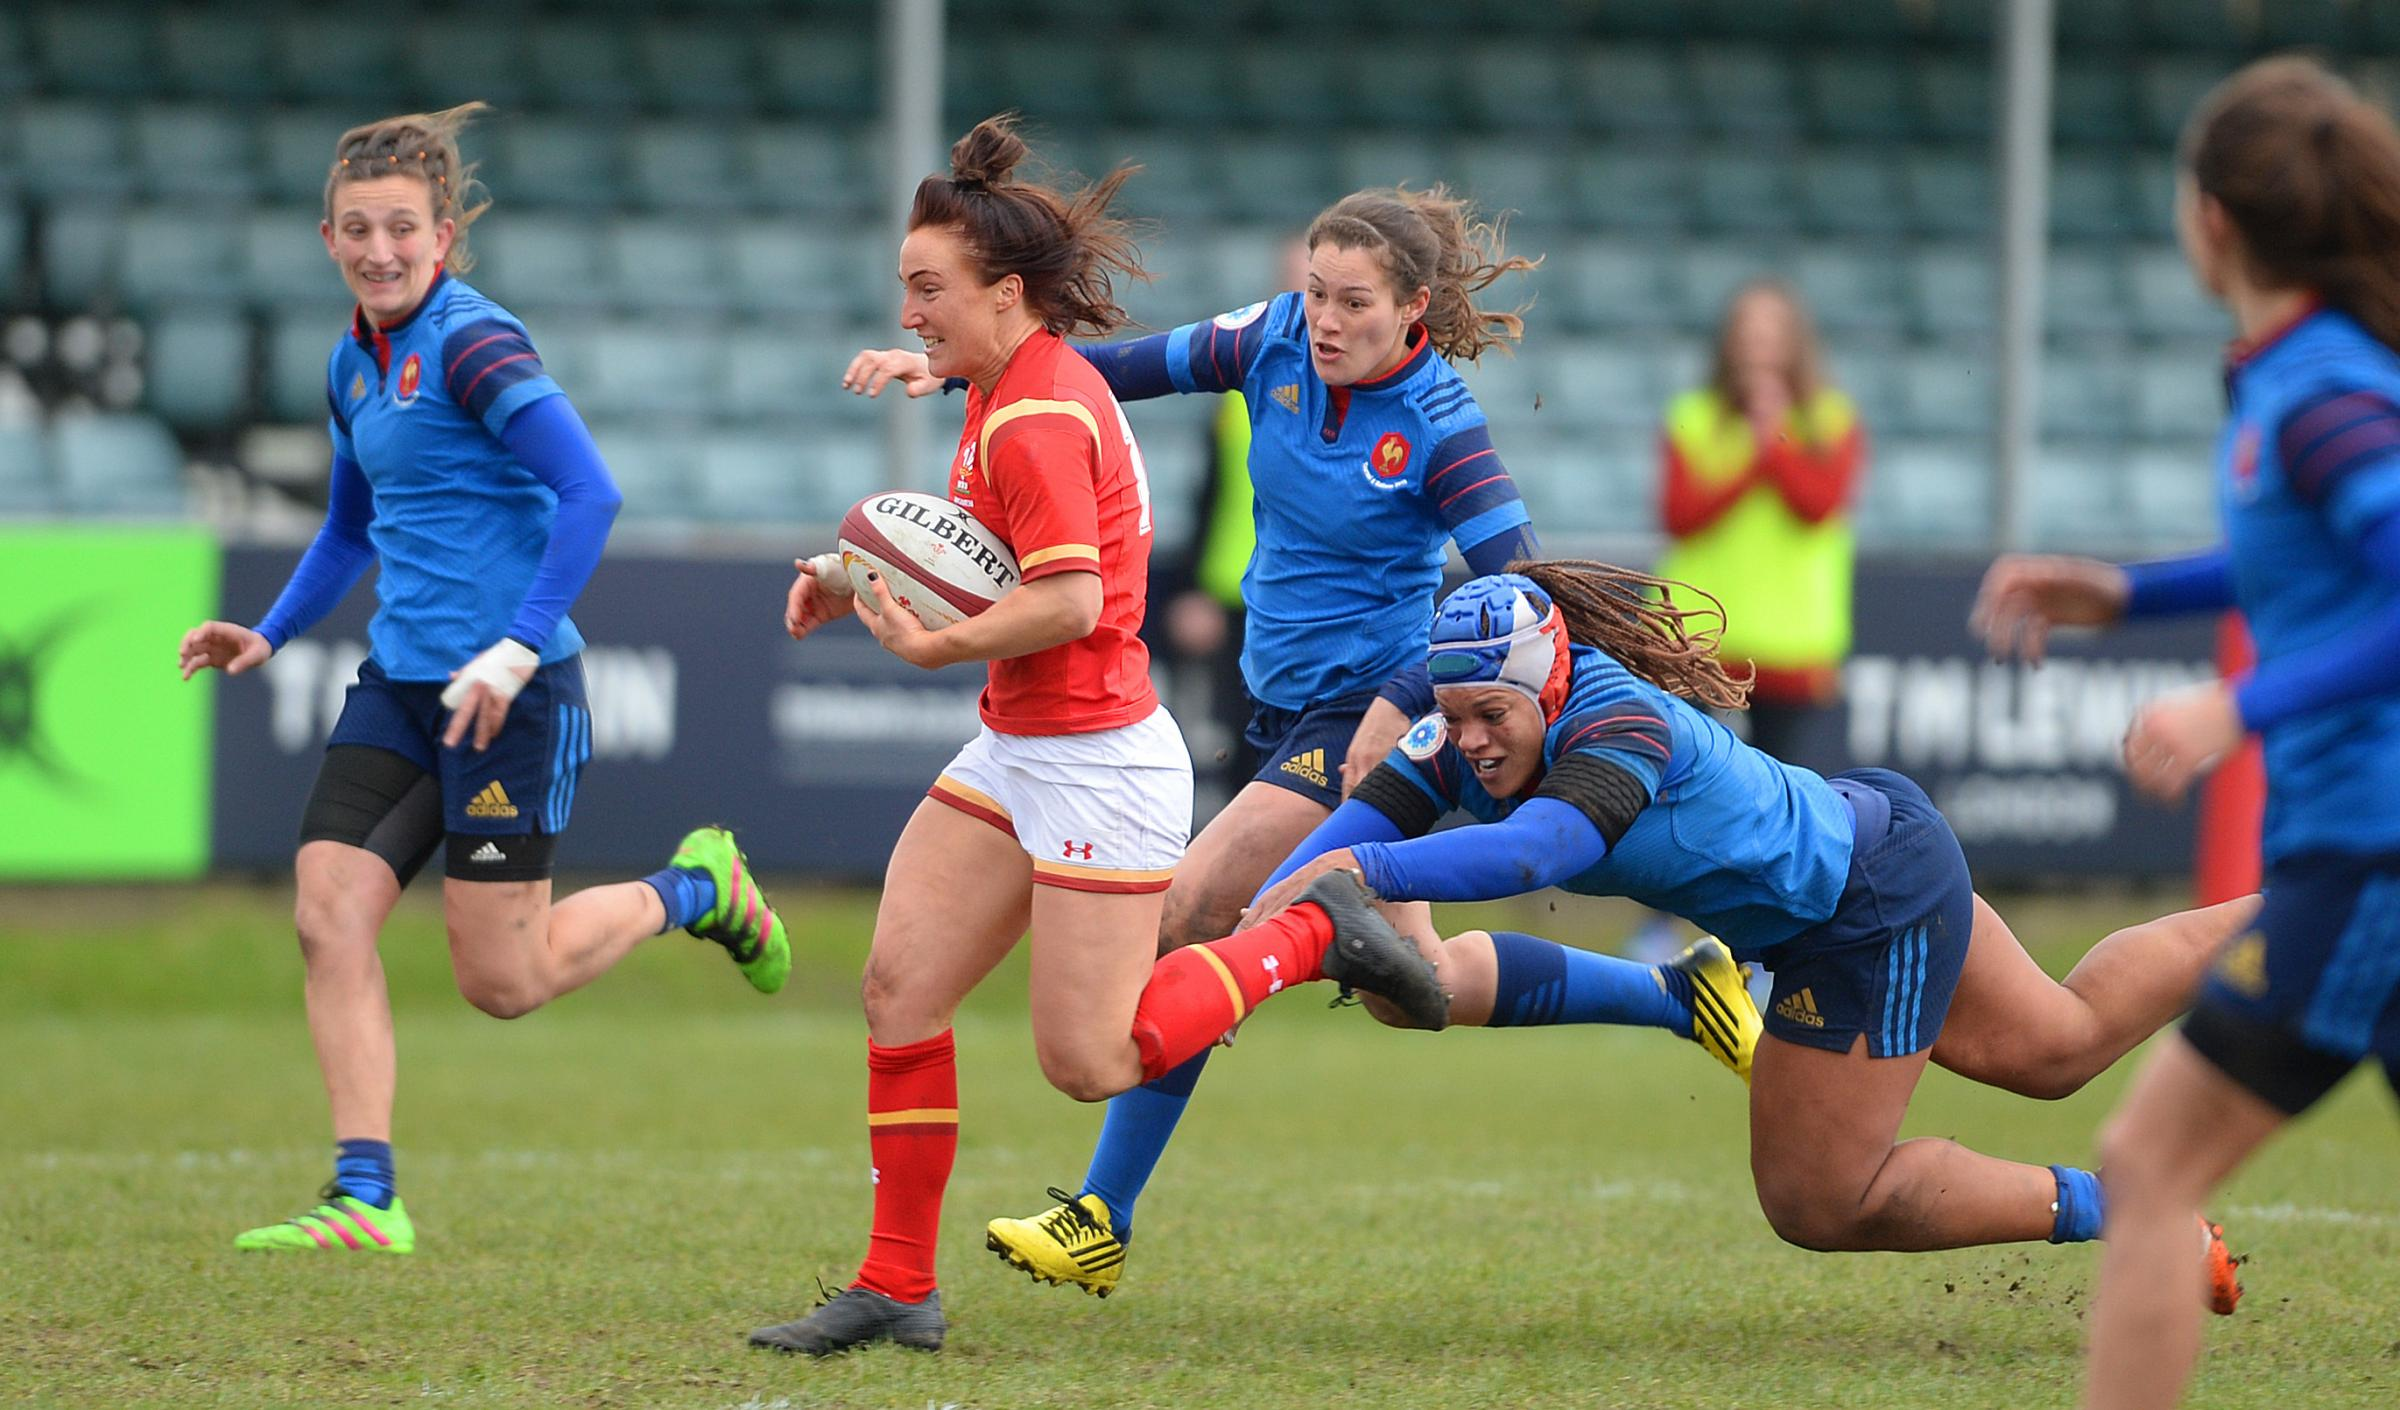 ON THE RUN: Wing Bethan Dainton's break helped set up Meg York's crucial score in Wales' win against France